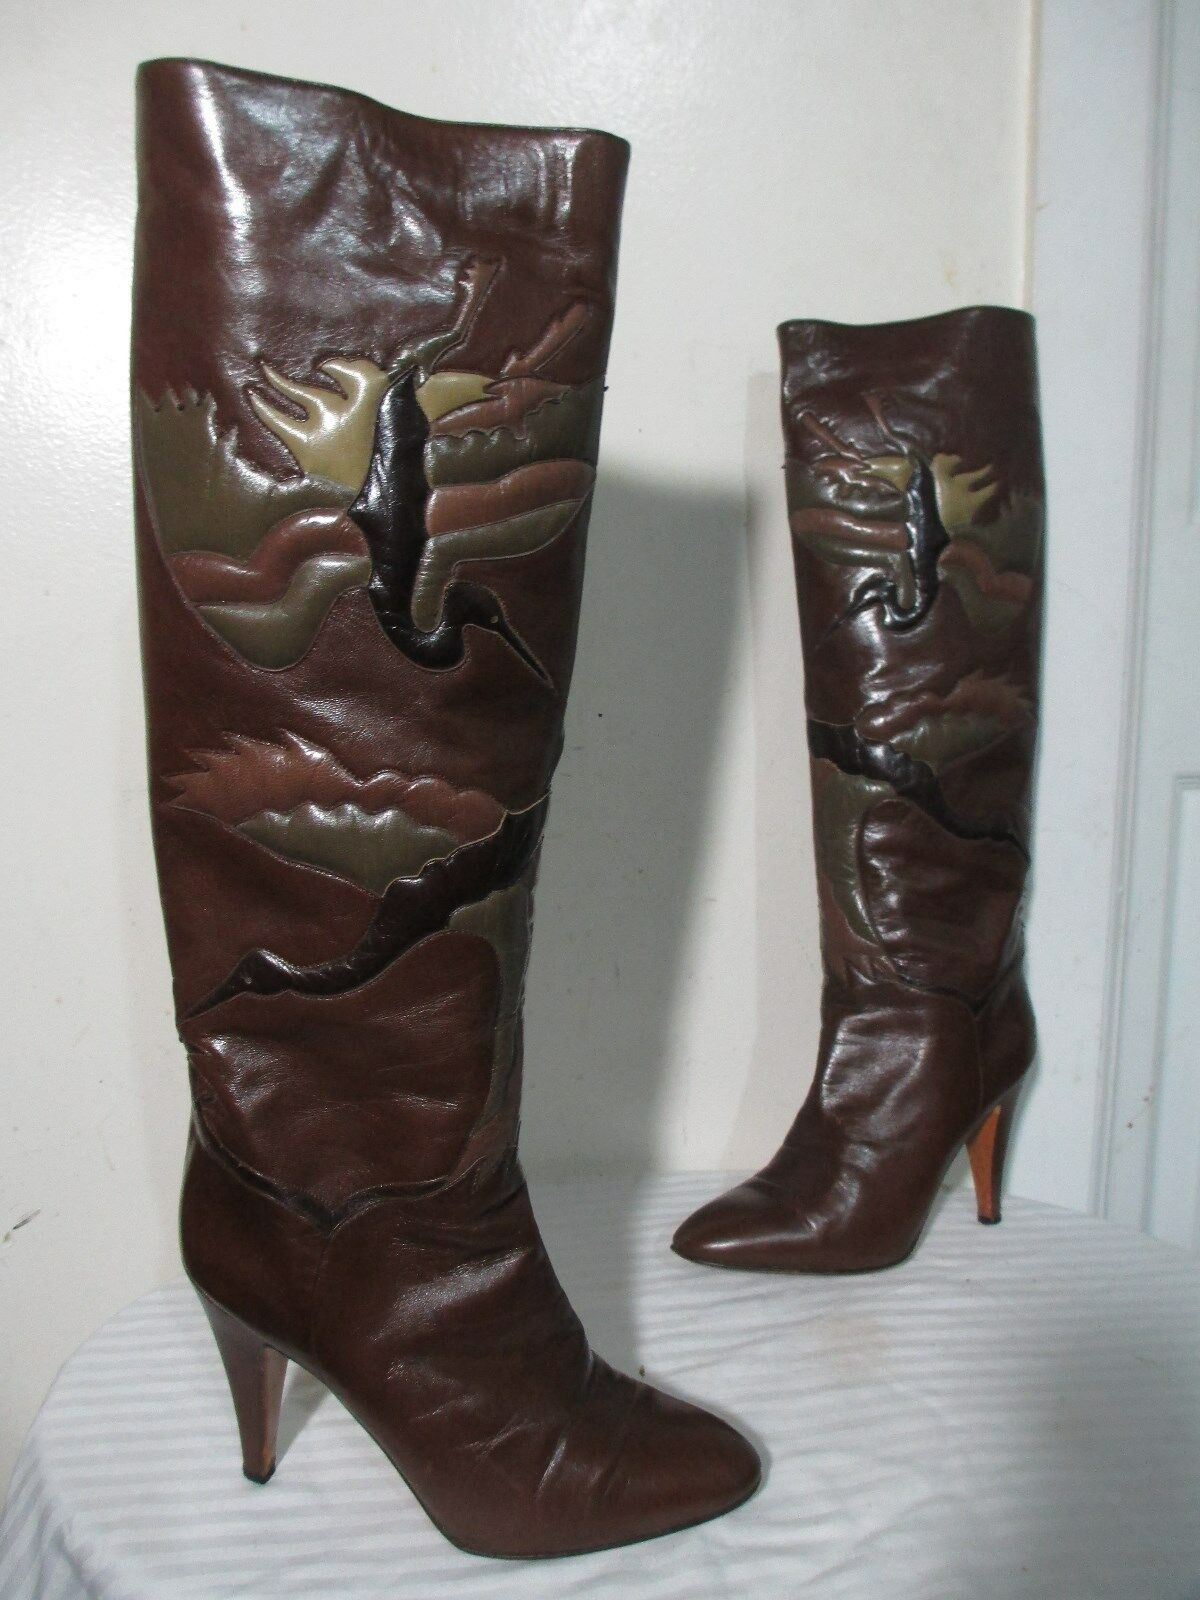 BOTTICELLI WMN'S BRN LEATHER W  SWANS INLAY HEELS PULL ON TALL BOOTS 37½ US 7